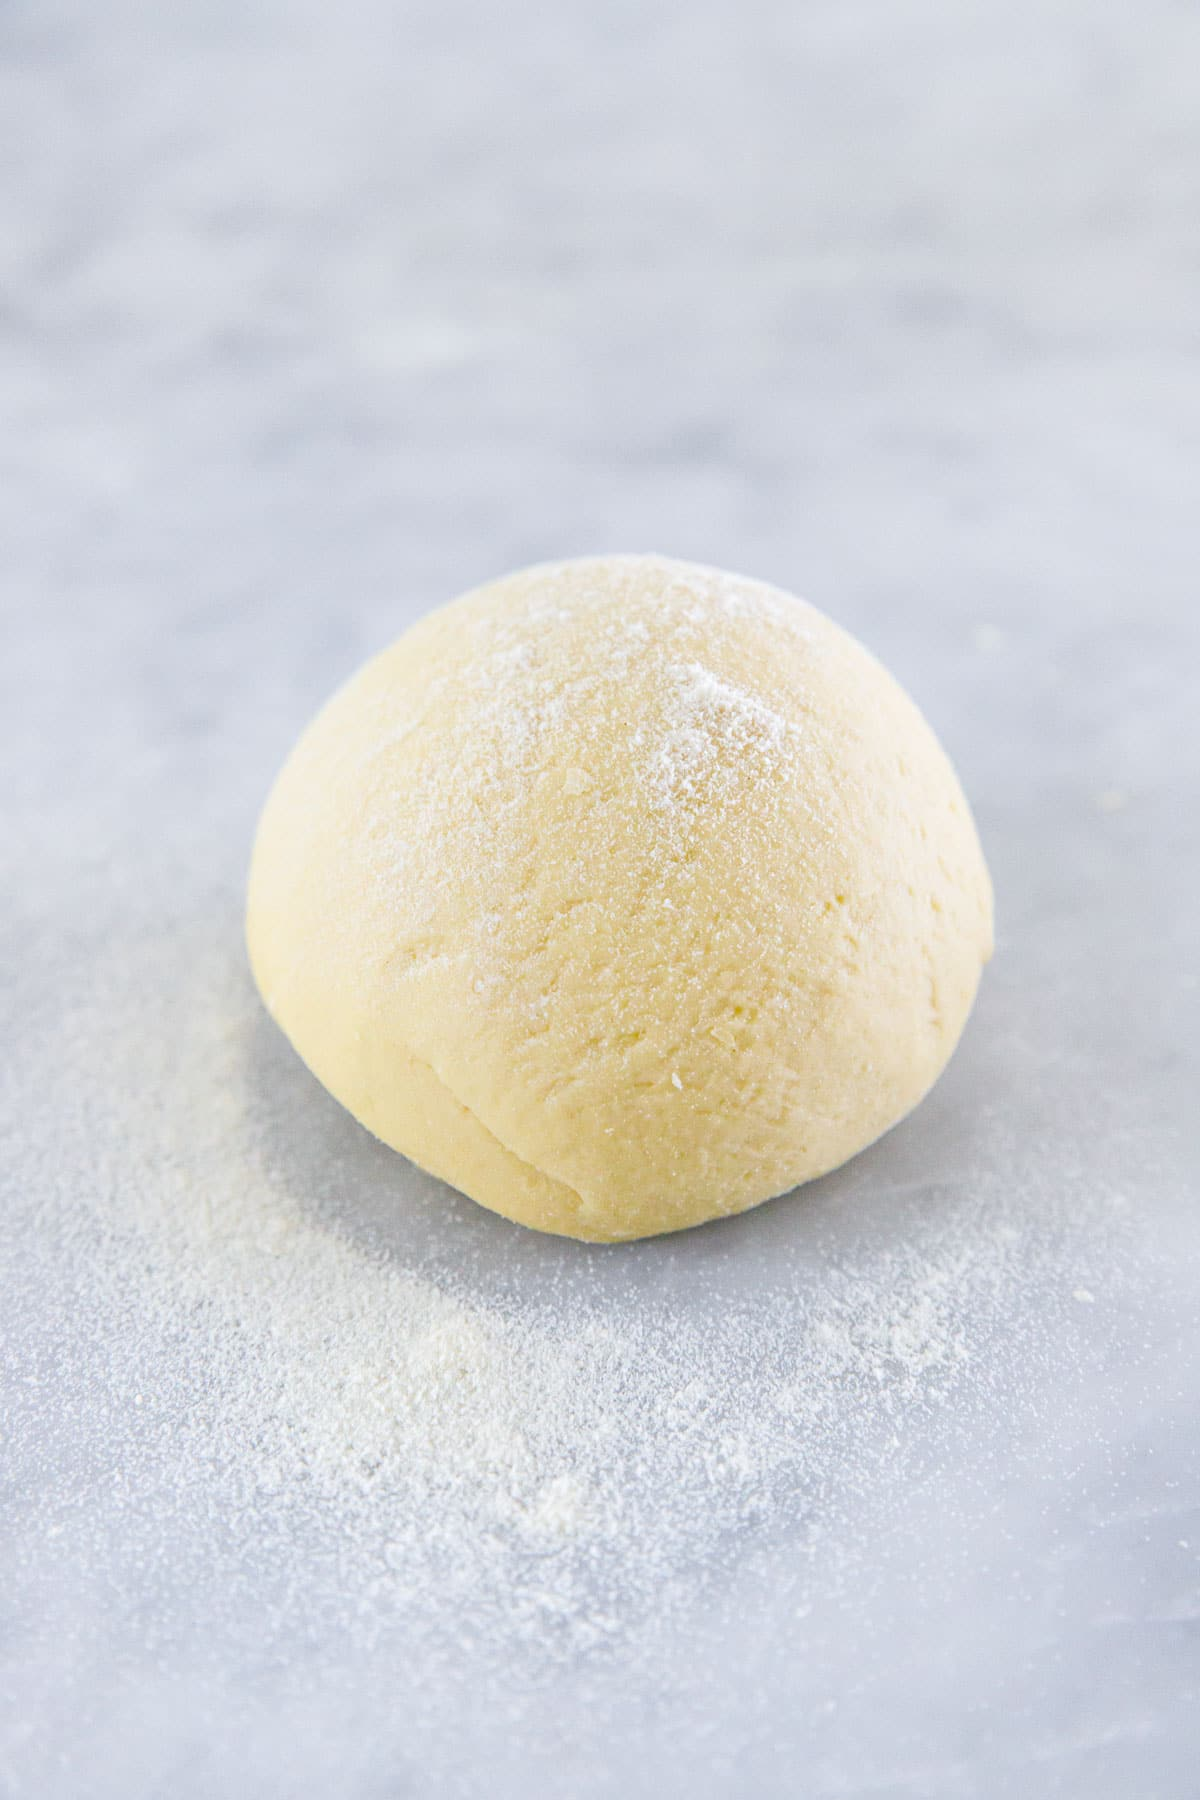 Freshly kneaded ball of homemade sourdough pasta dough, dusted with semolina on a marble surface.